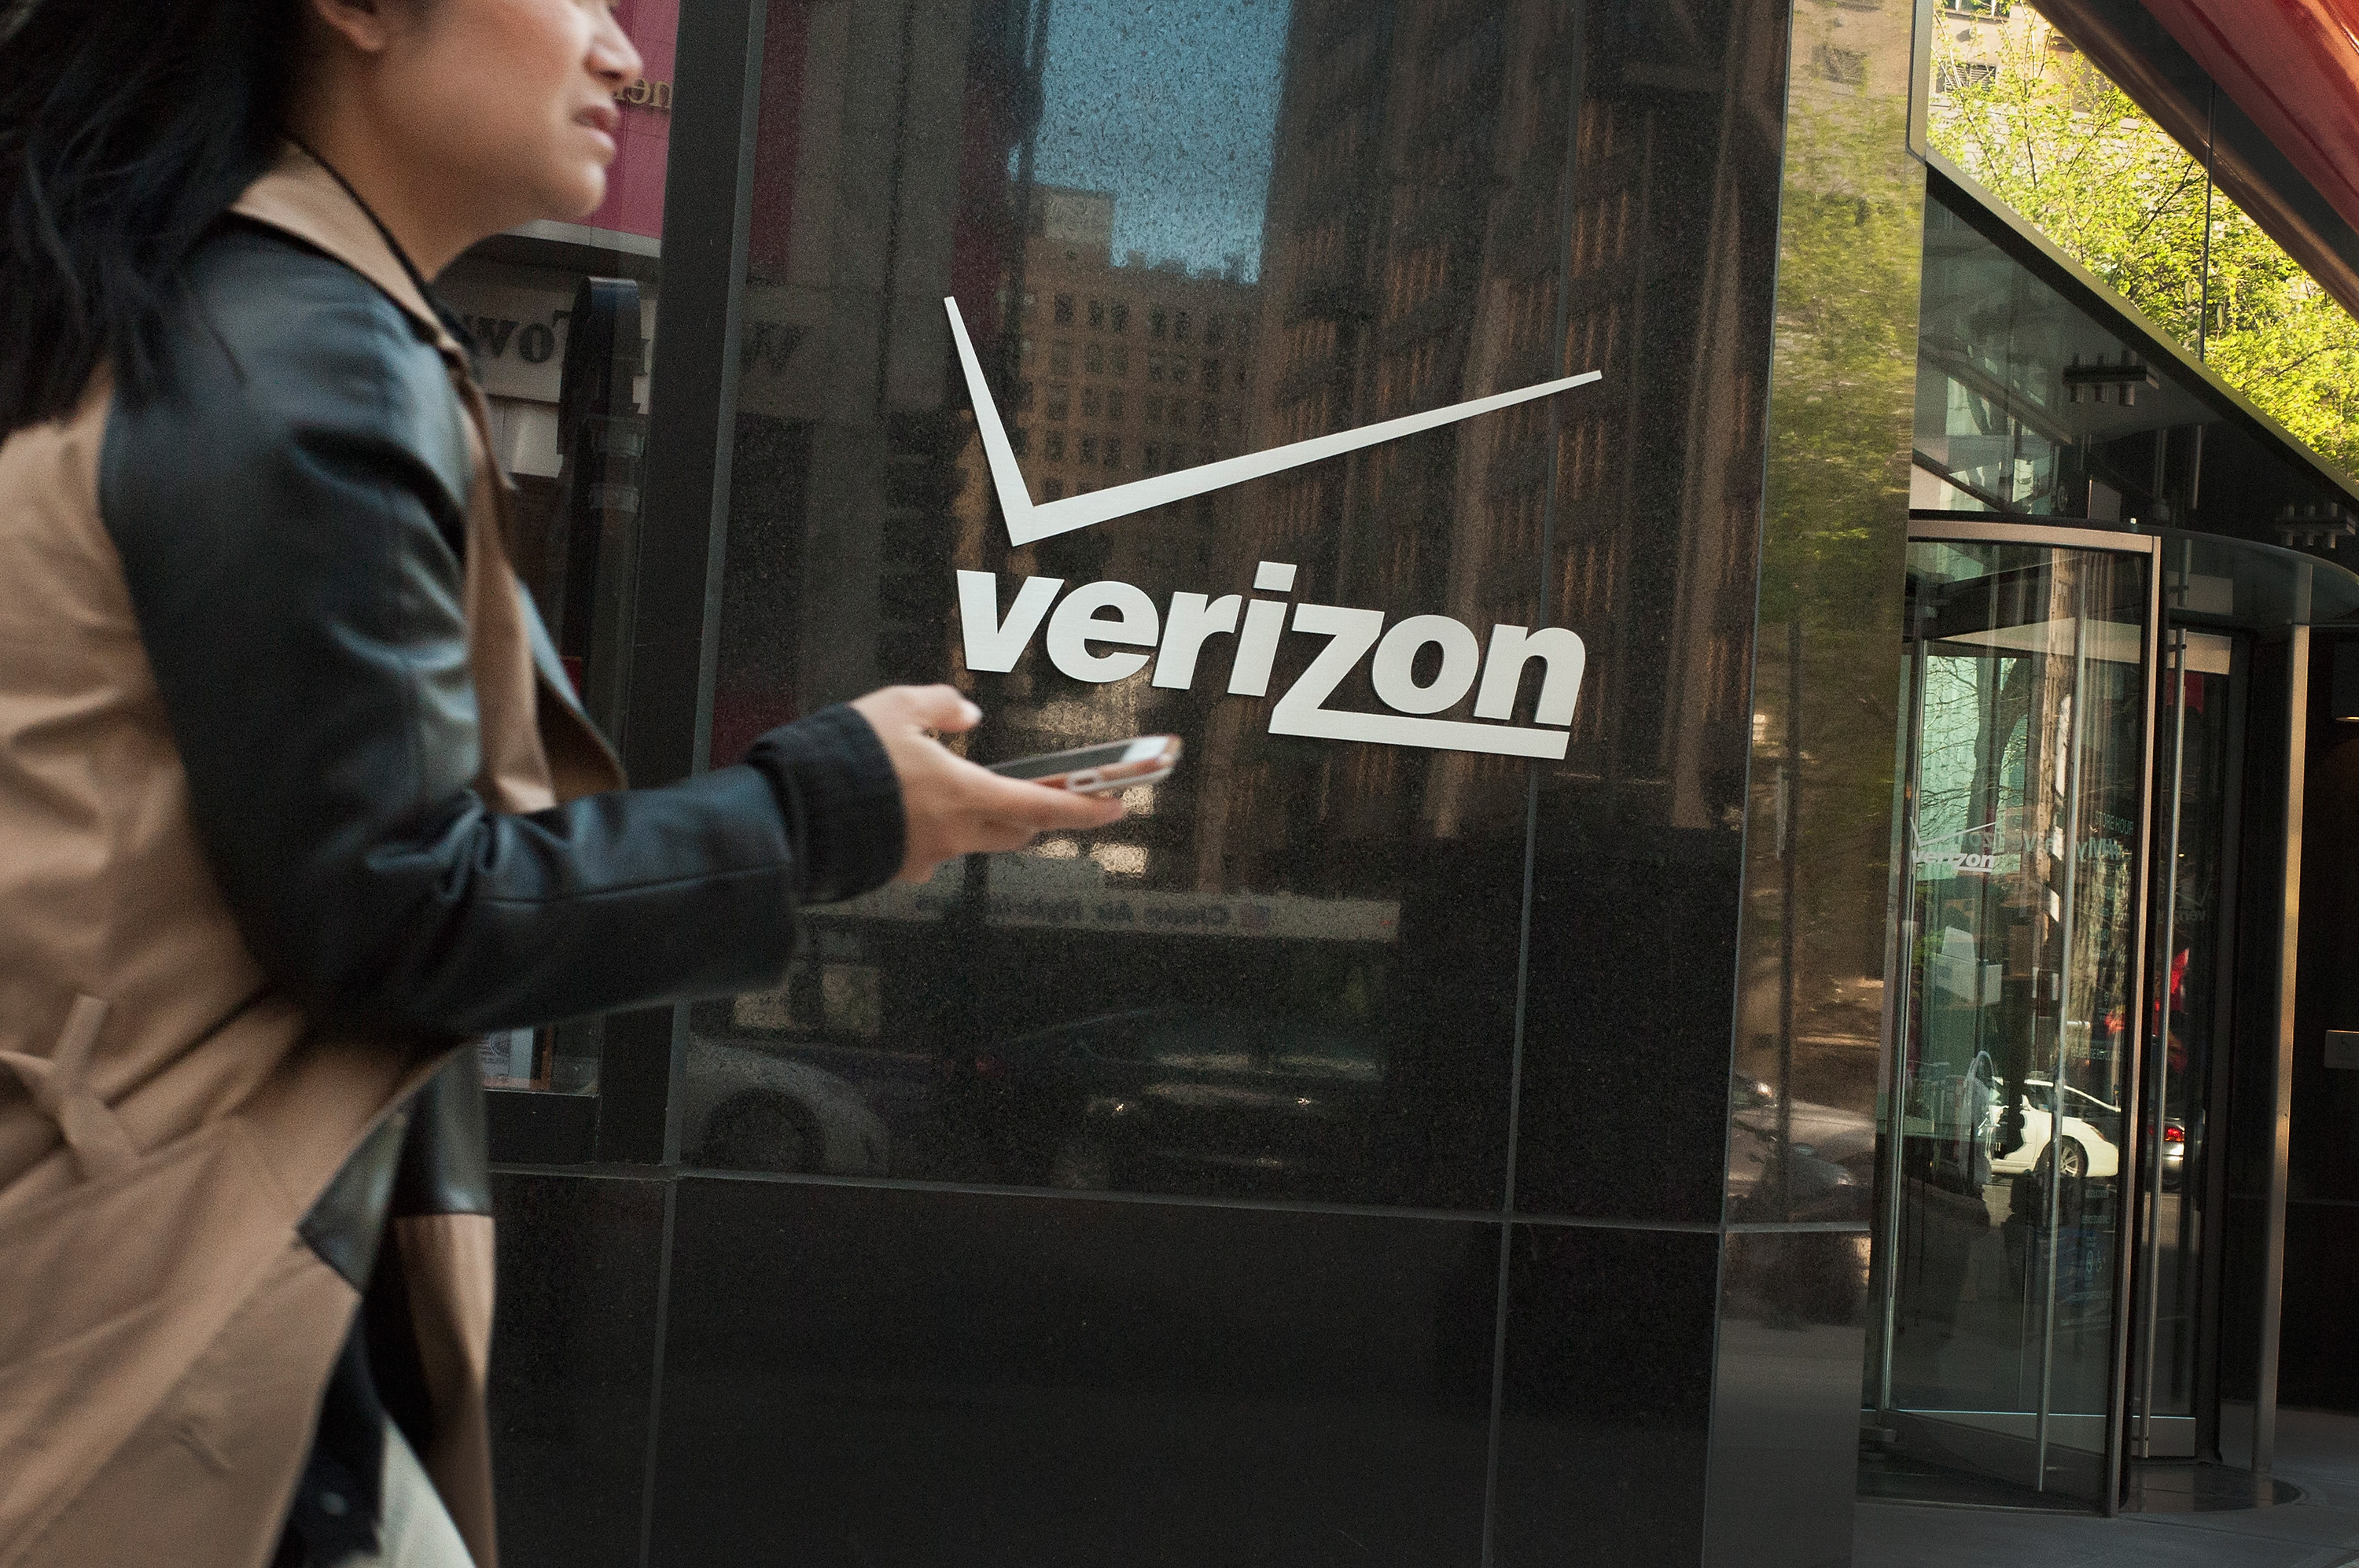 People pass by a Verizon store on April 20, 2017, in Chicago, Ill. (Scott Olson/Getty Images)